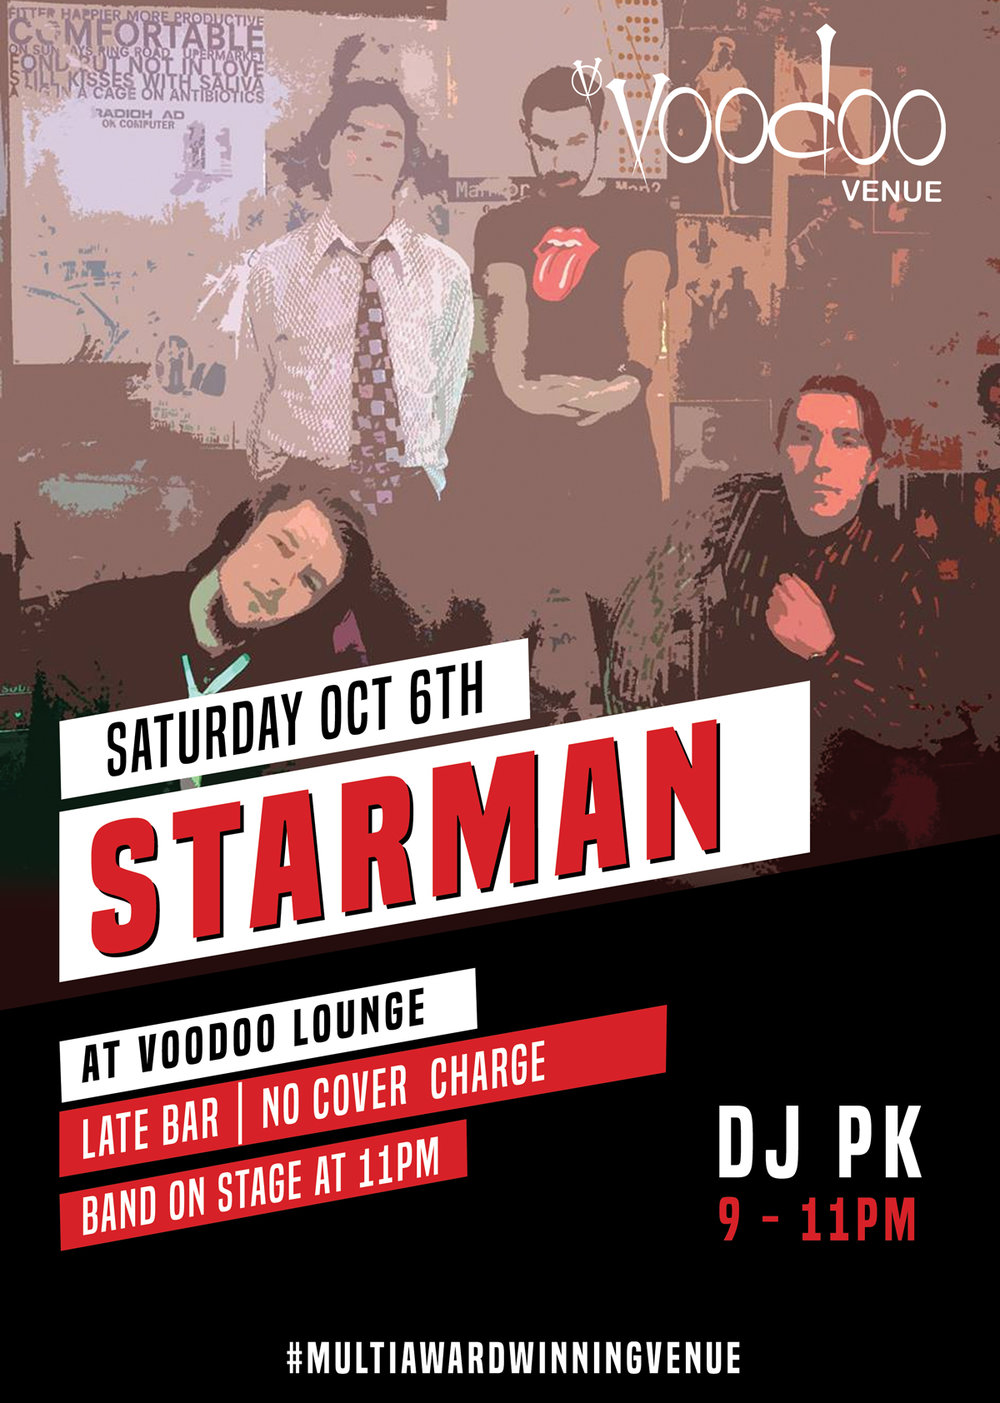 voodoo-venue---sat-STARMAN-OCT-6-2018.jpg